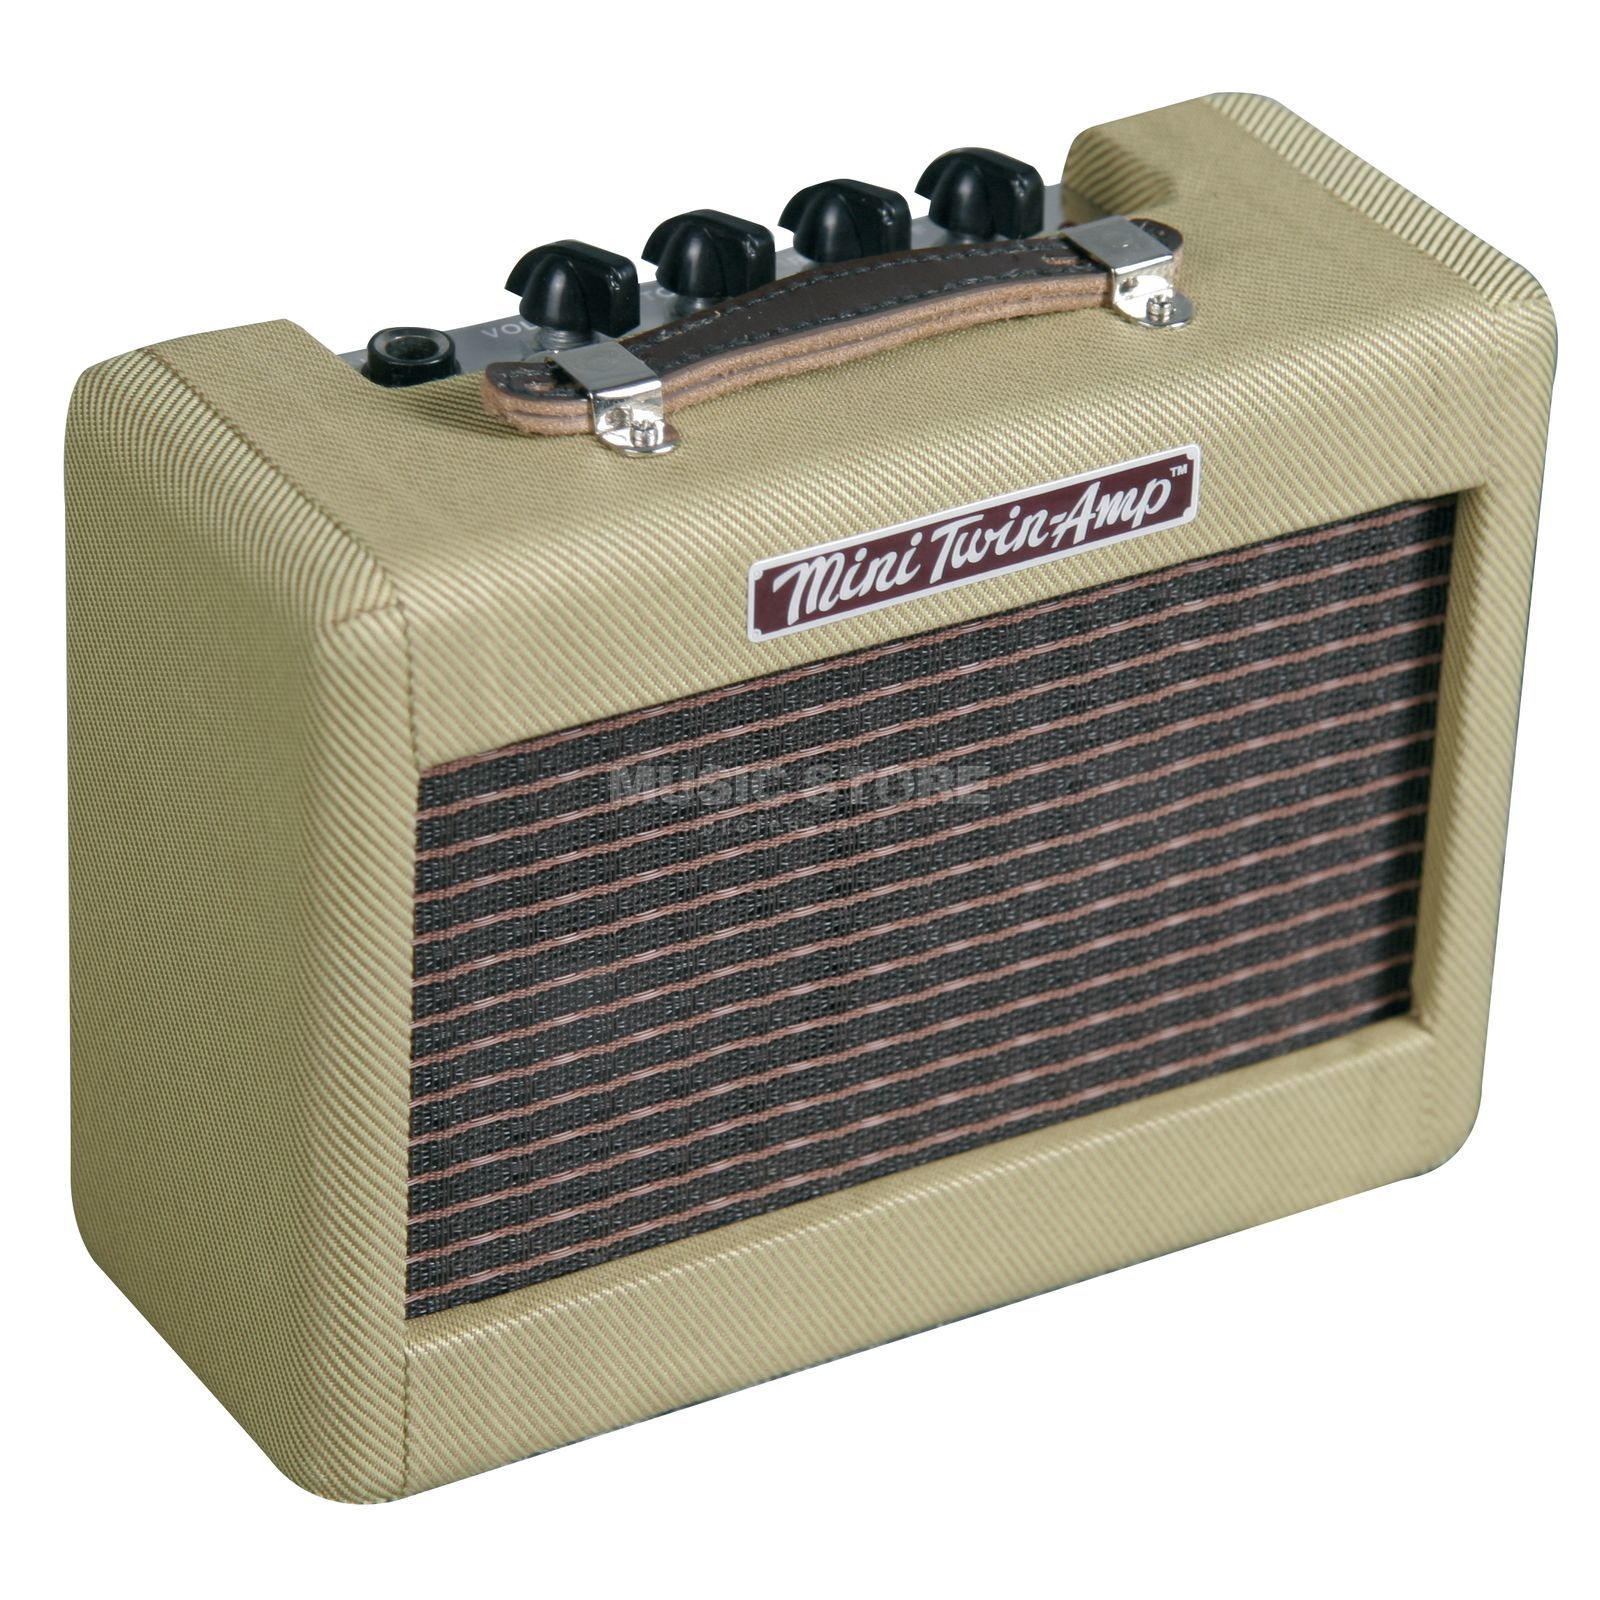 Fender Mini '57 Twin-Amp    Produktbillede